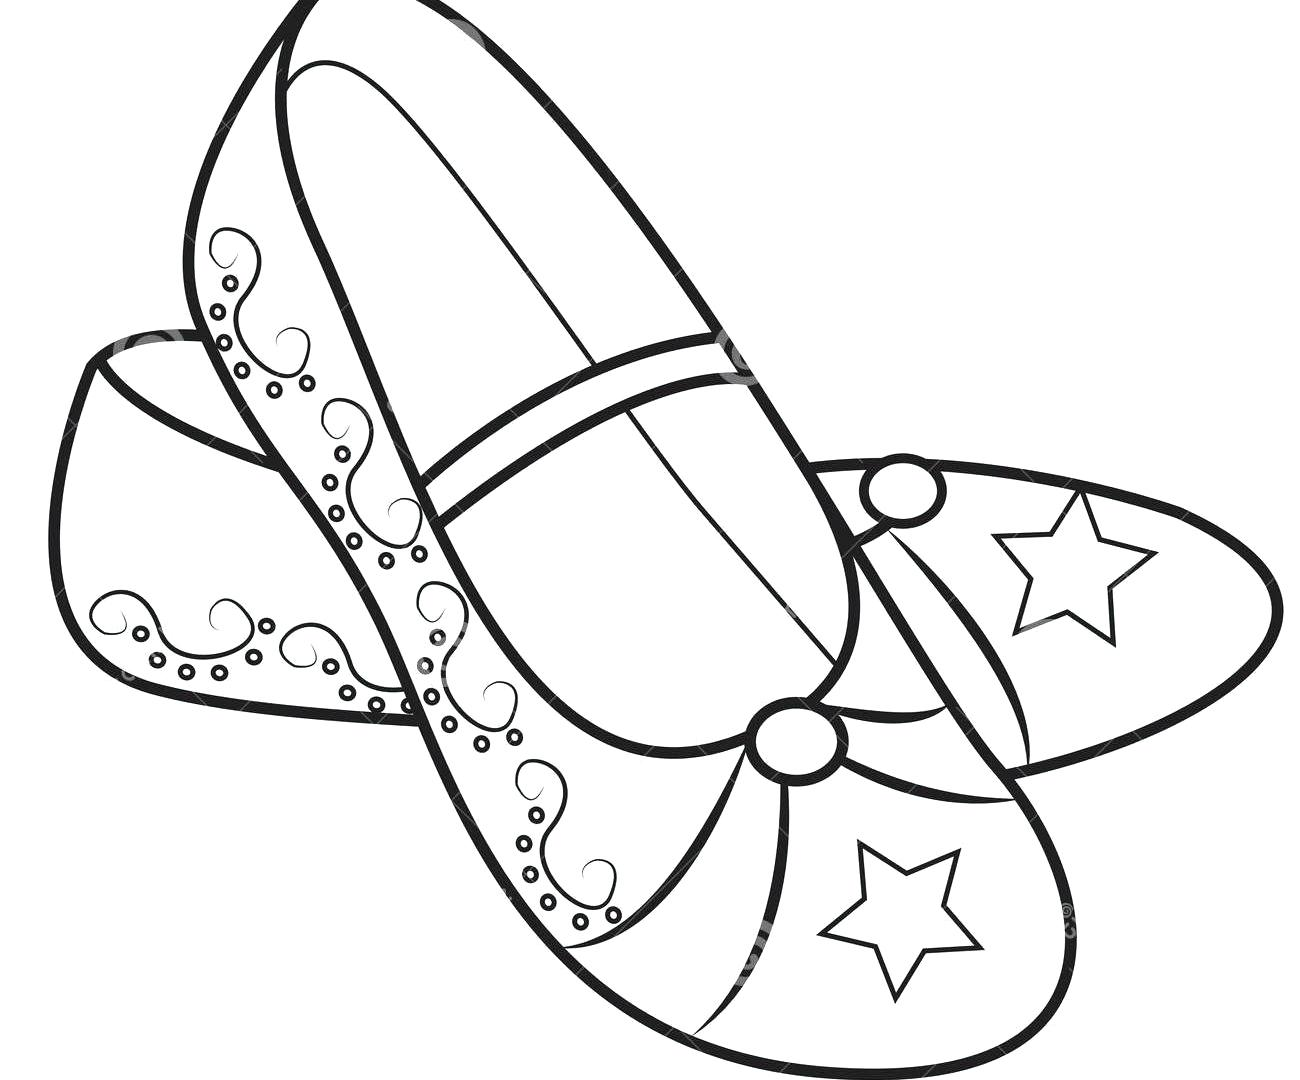 1300x1080 Coloring Page ~ Jordan Shoes Coloring Pages Michael Jordan Shoes